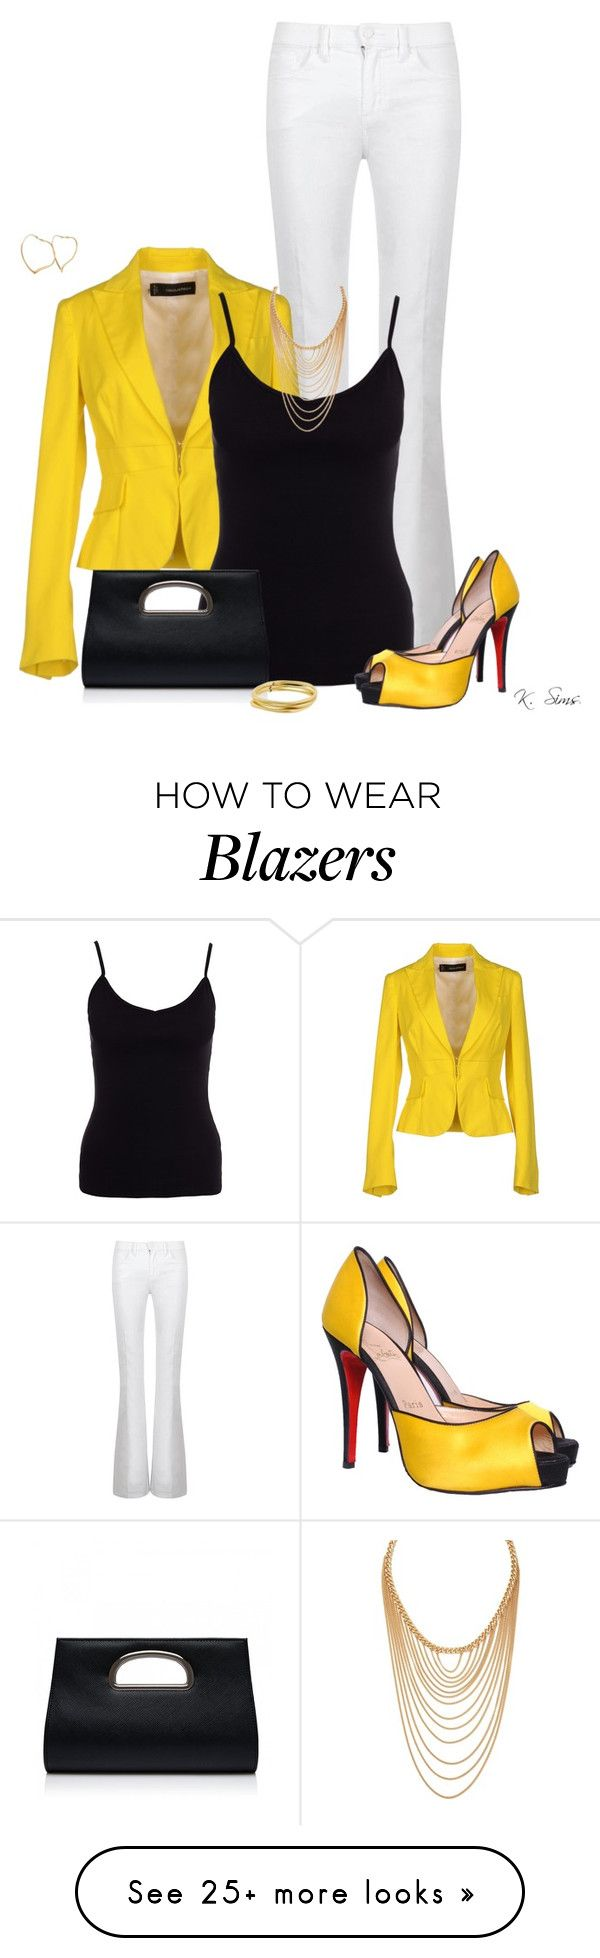 """Yellow Blazer"" by ksims-1 on Polyvore featuring Tory Burch, Dsquared2, New Look, Christian Louboutin, Forever New, Forever 21, Karen Kane and Tiffany & Co."